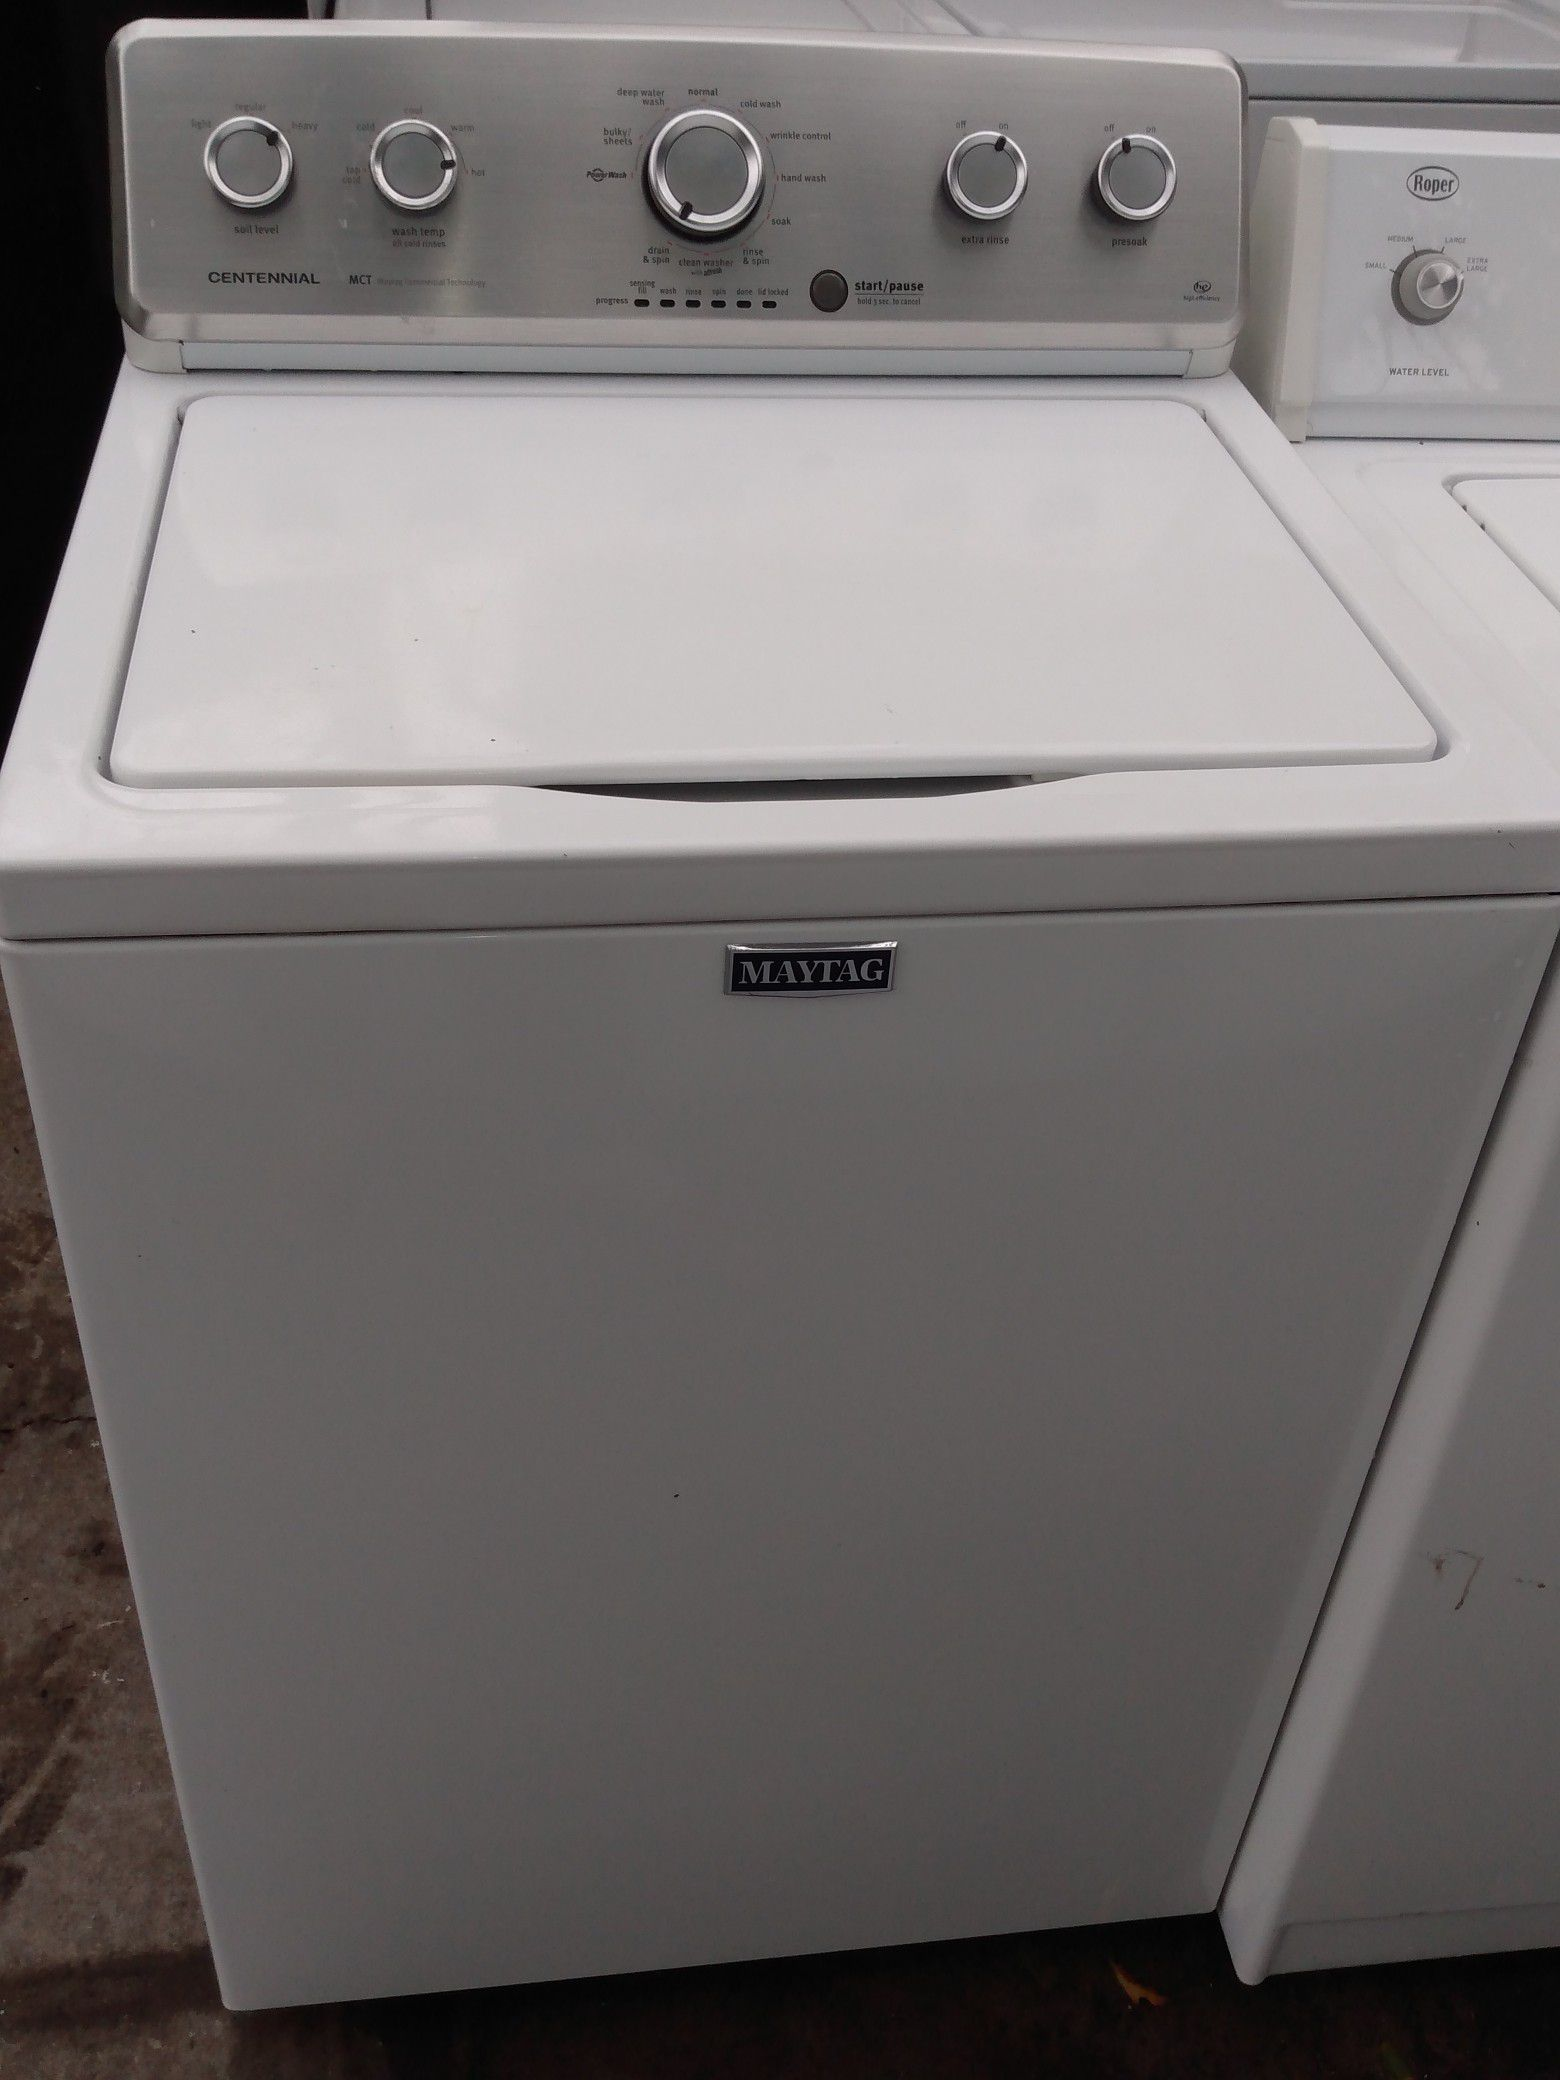 maytag washer deliver free instalación free 3 months warranthy